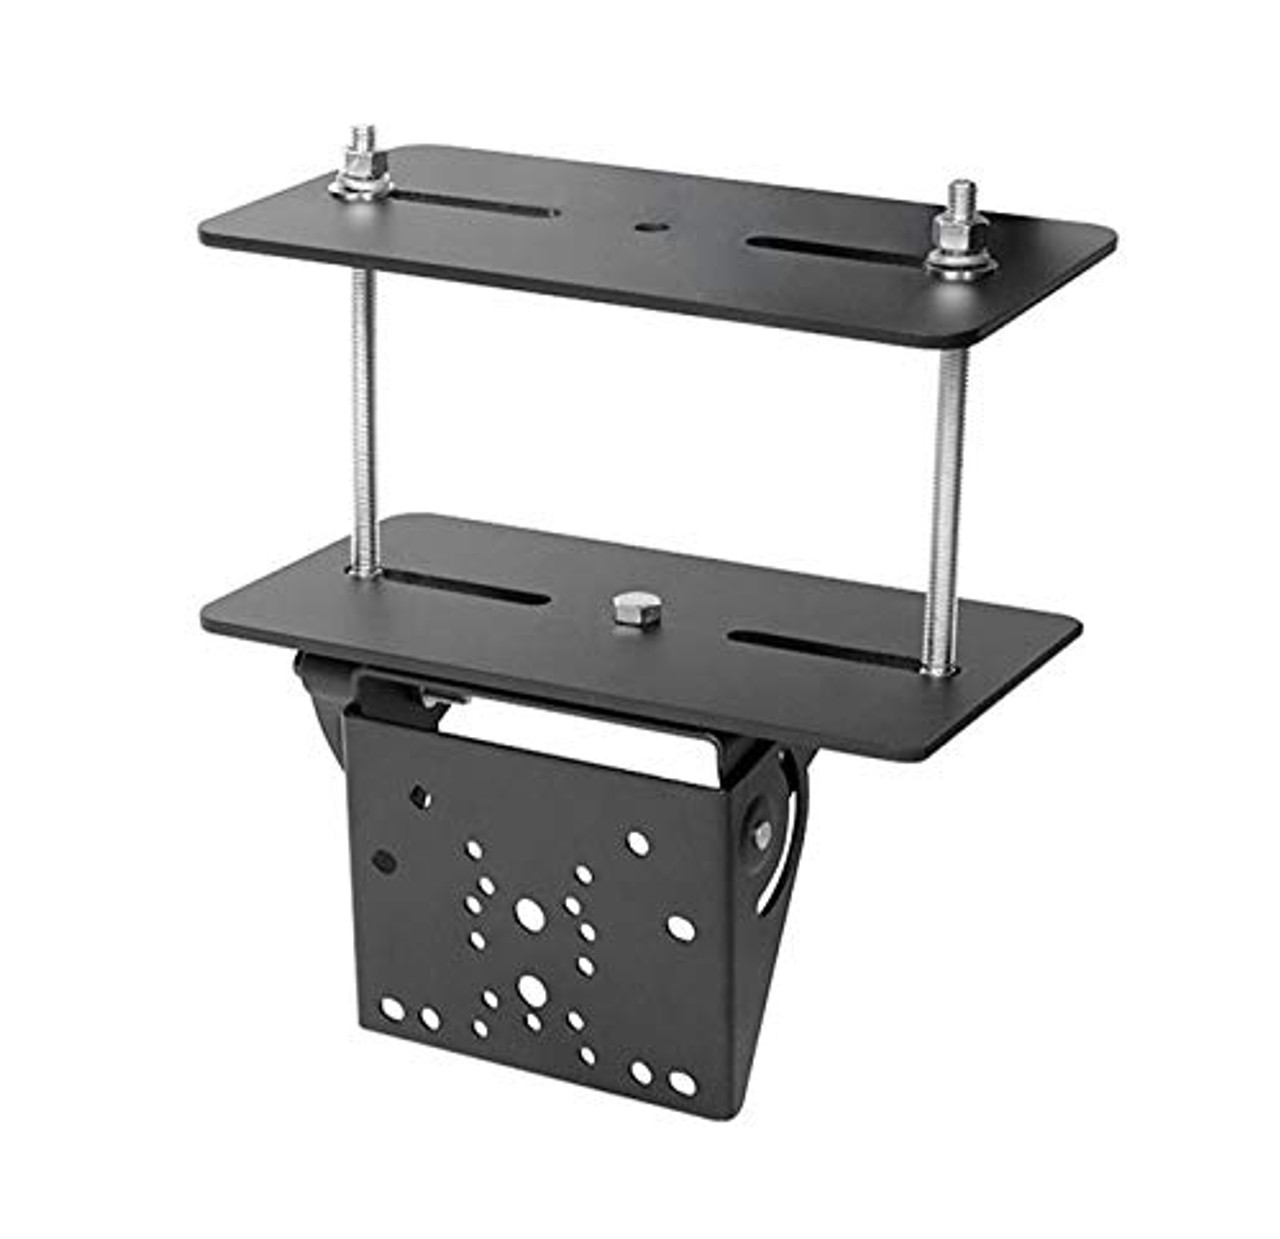 GAMBER JOHNSON - Overhead Guard Mount with Single Clam Shell   0309X8UBLEX